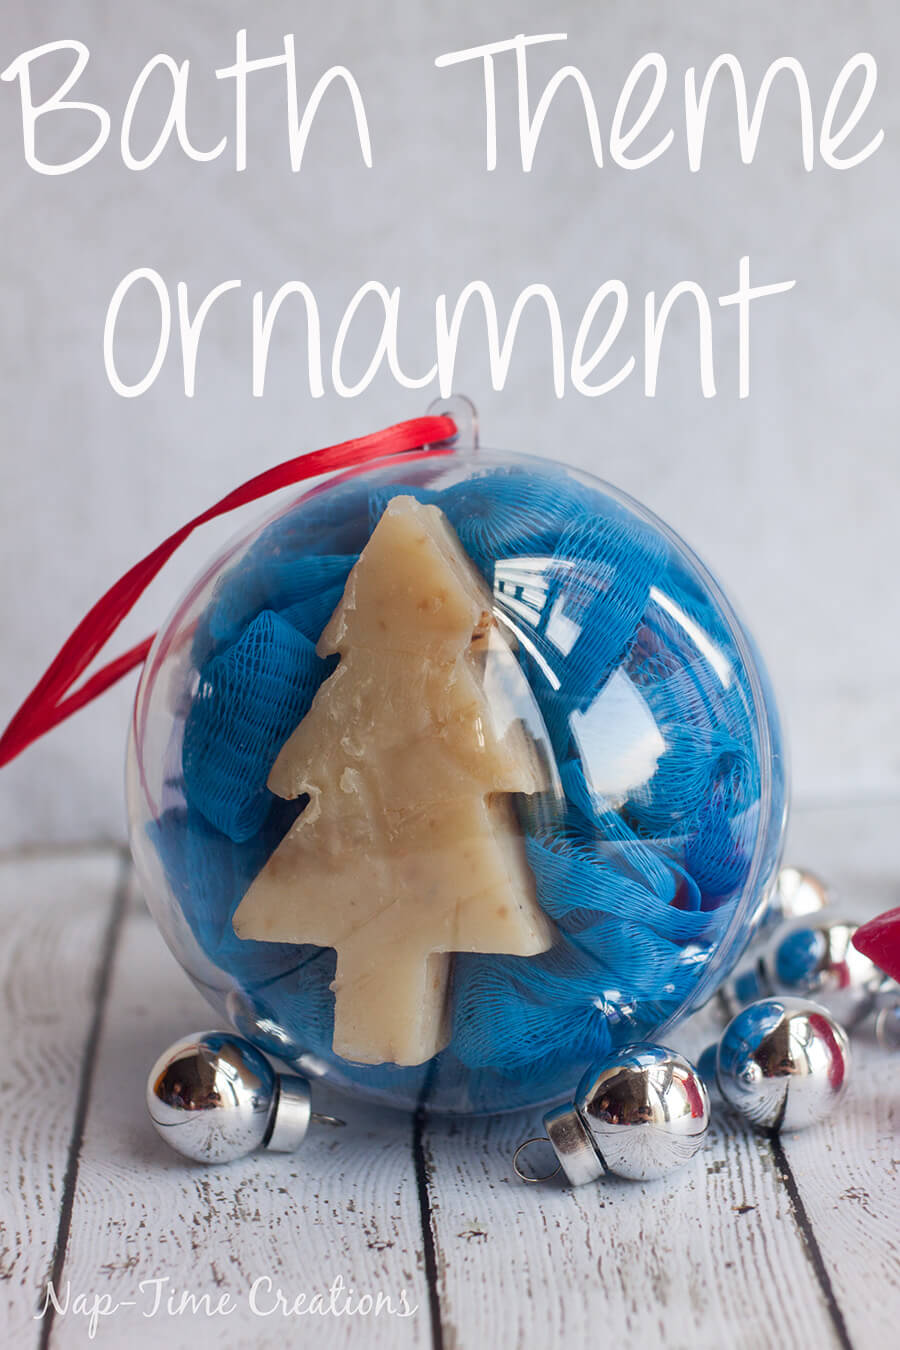 kid ornament ideas bath theme ornament from Life Sew Savory